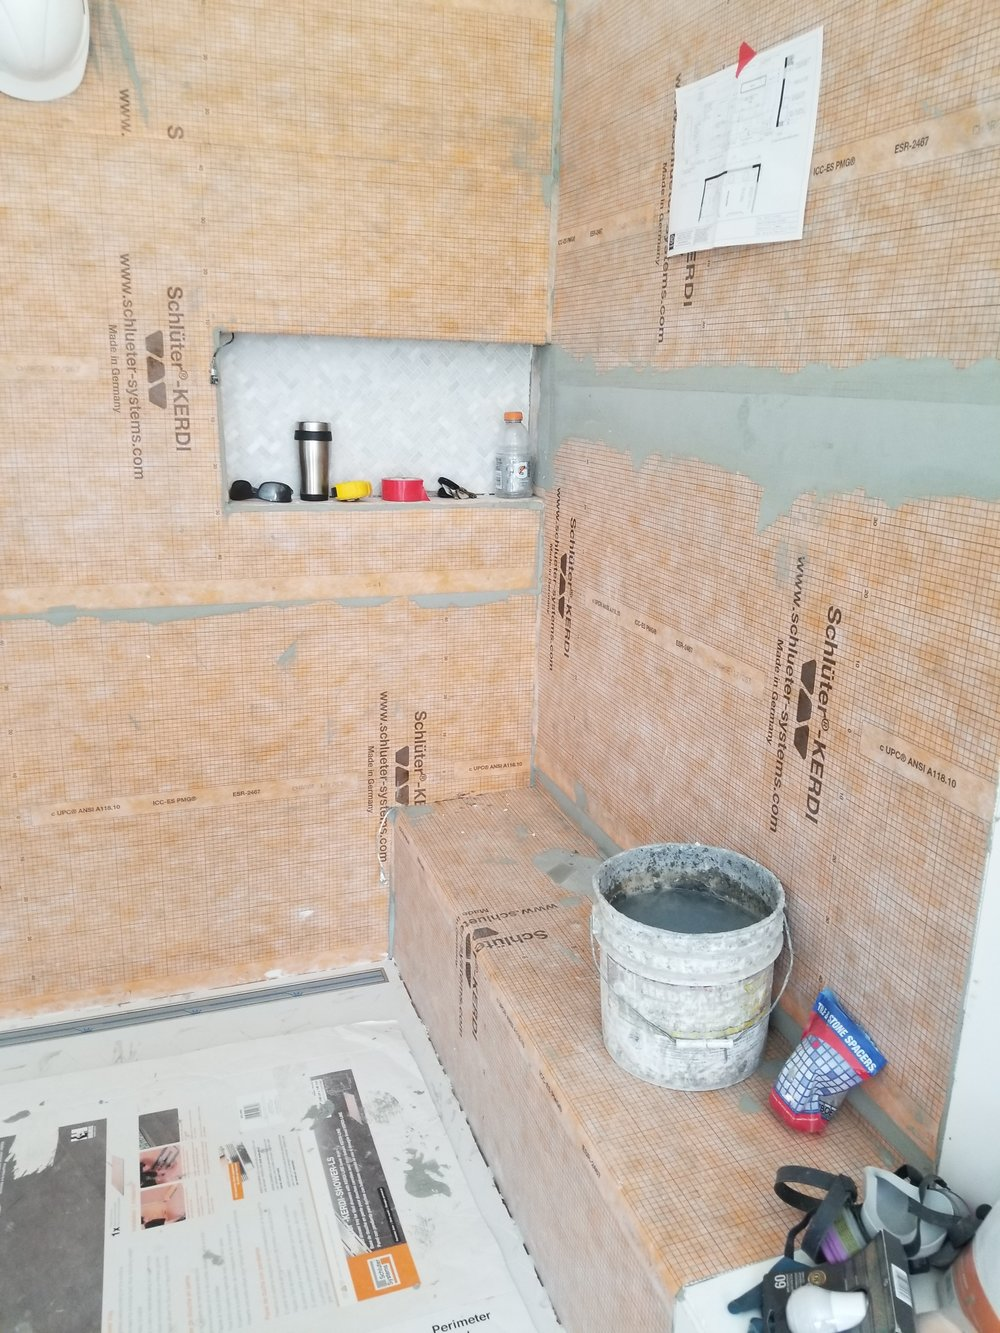 Shower Layers - I just got back from Schluter workshops which included learning about Schluter Kerdi shower membranes and proper installation methods. It's great to see it going into a project!